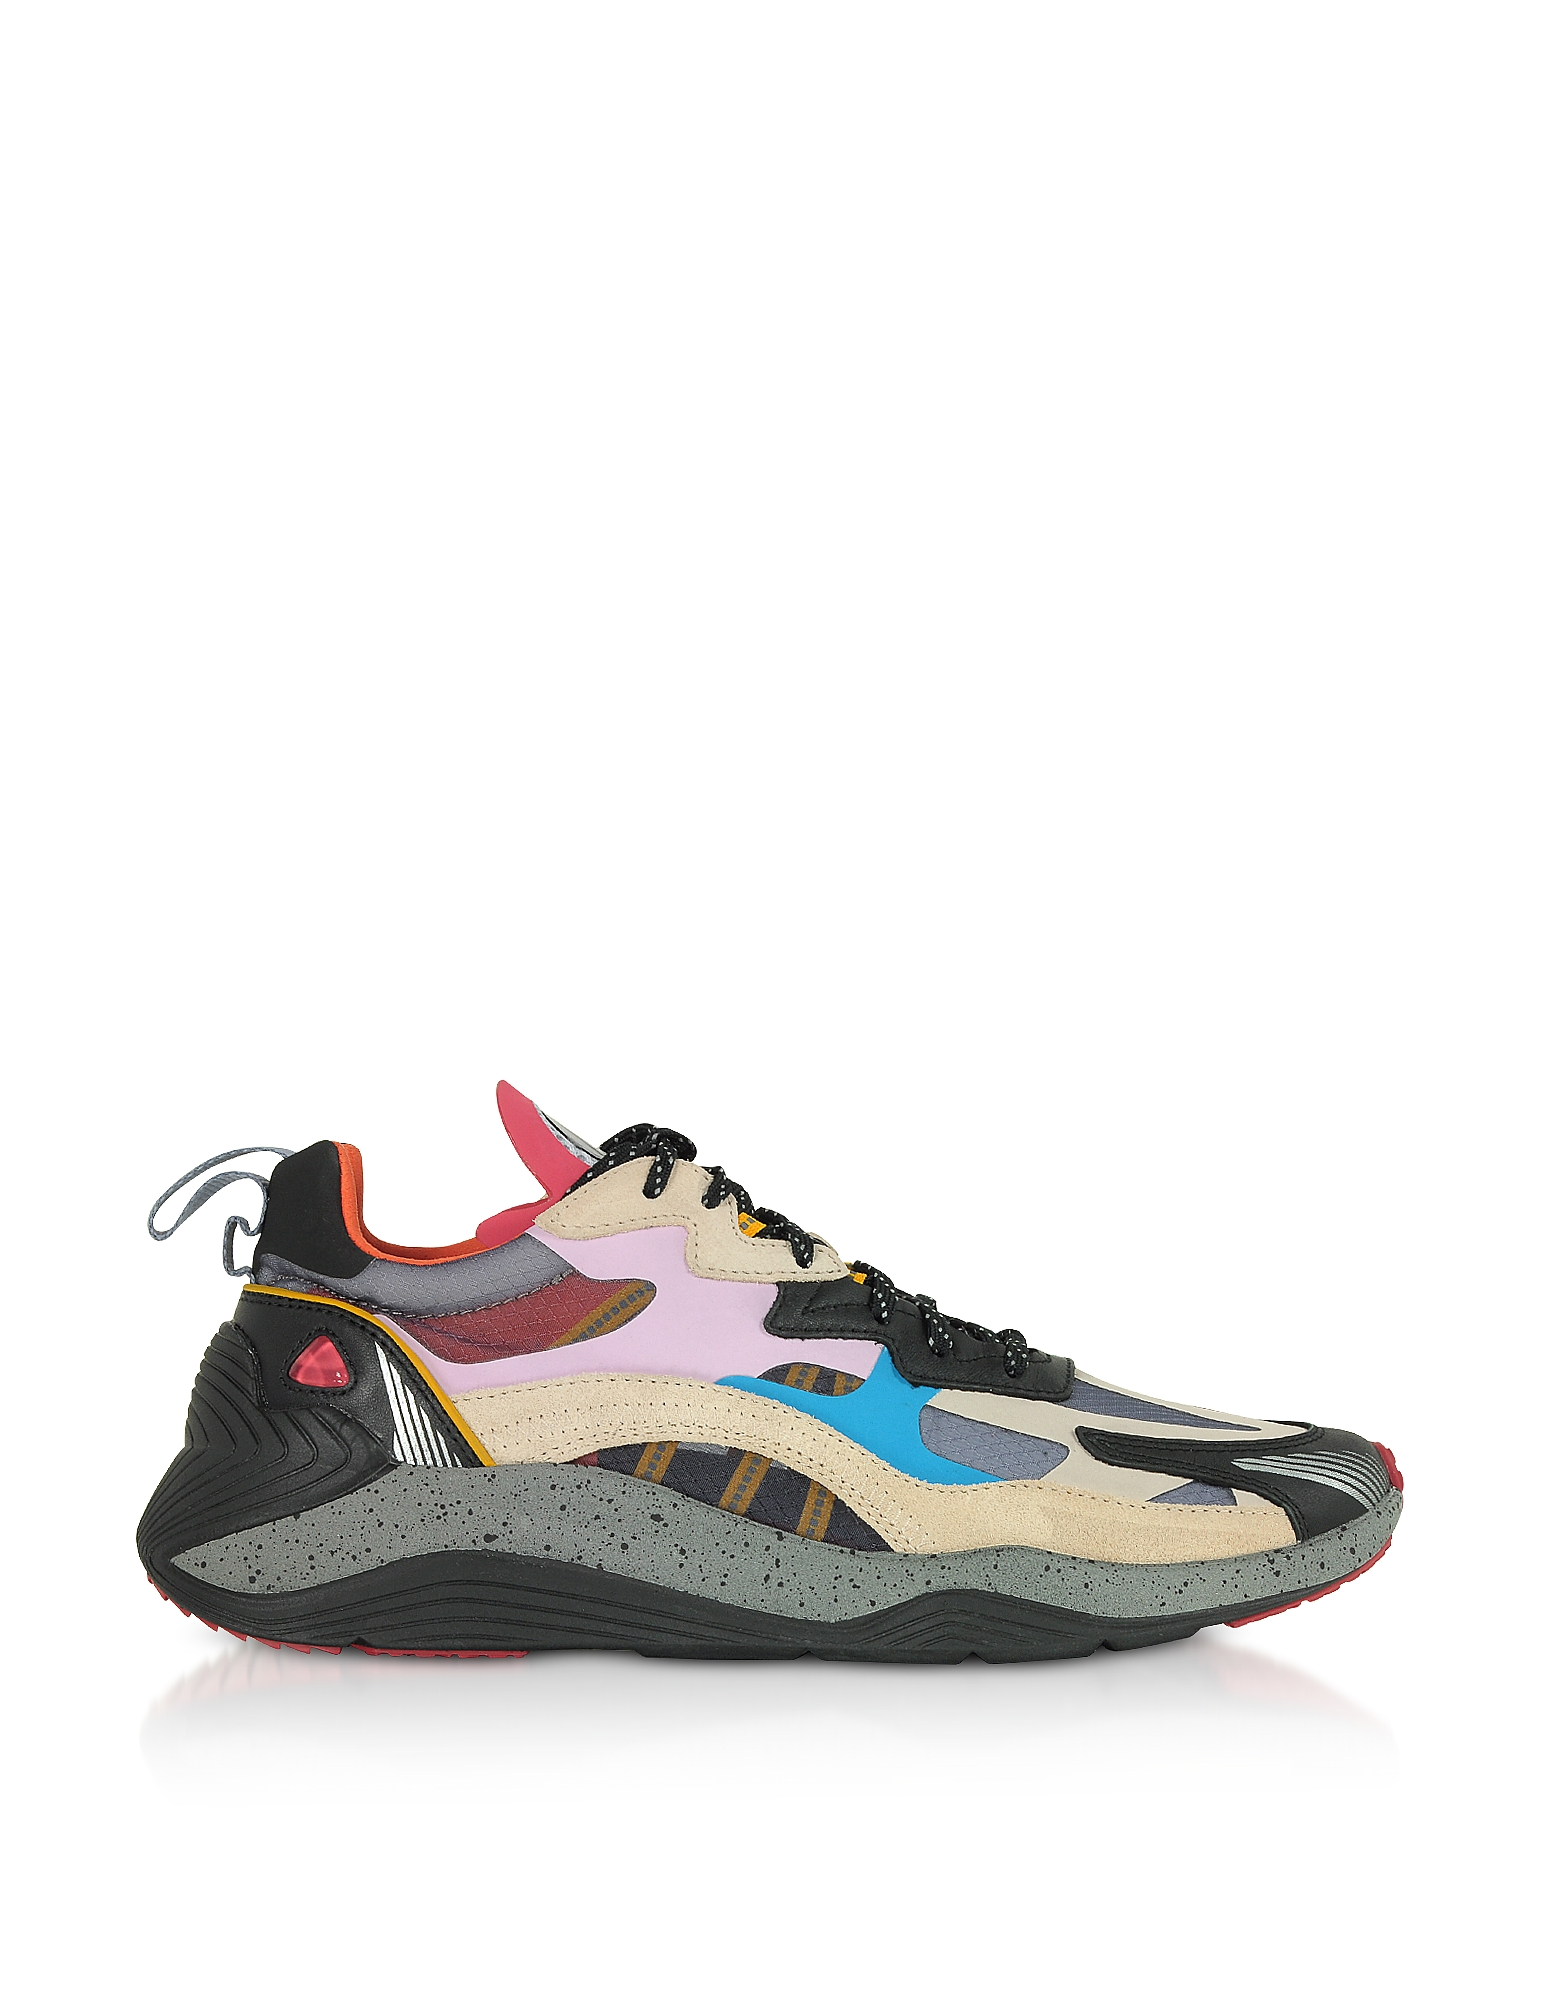 McQ Alexander McQueen Designer Shoes, Daku 2.0 Bubblegum Mix Sneakers